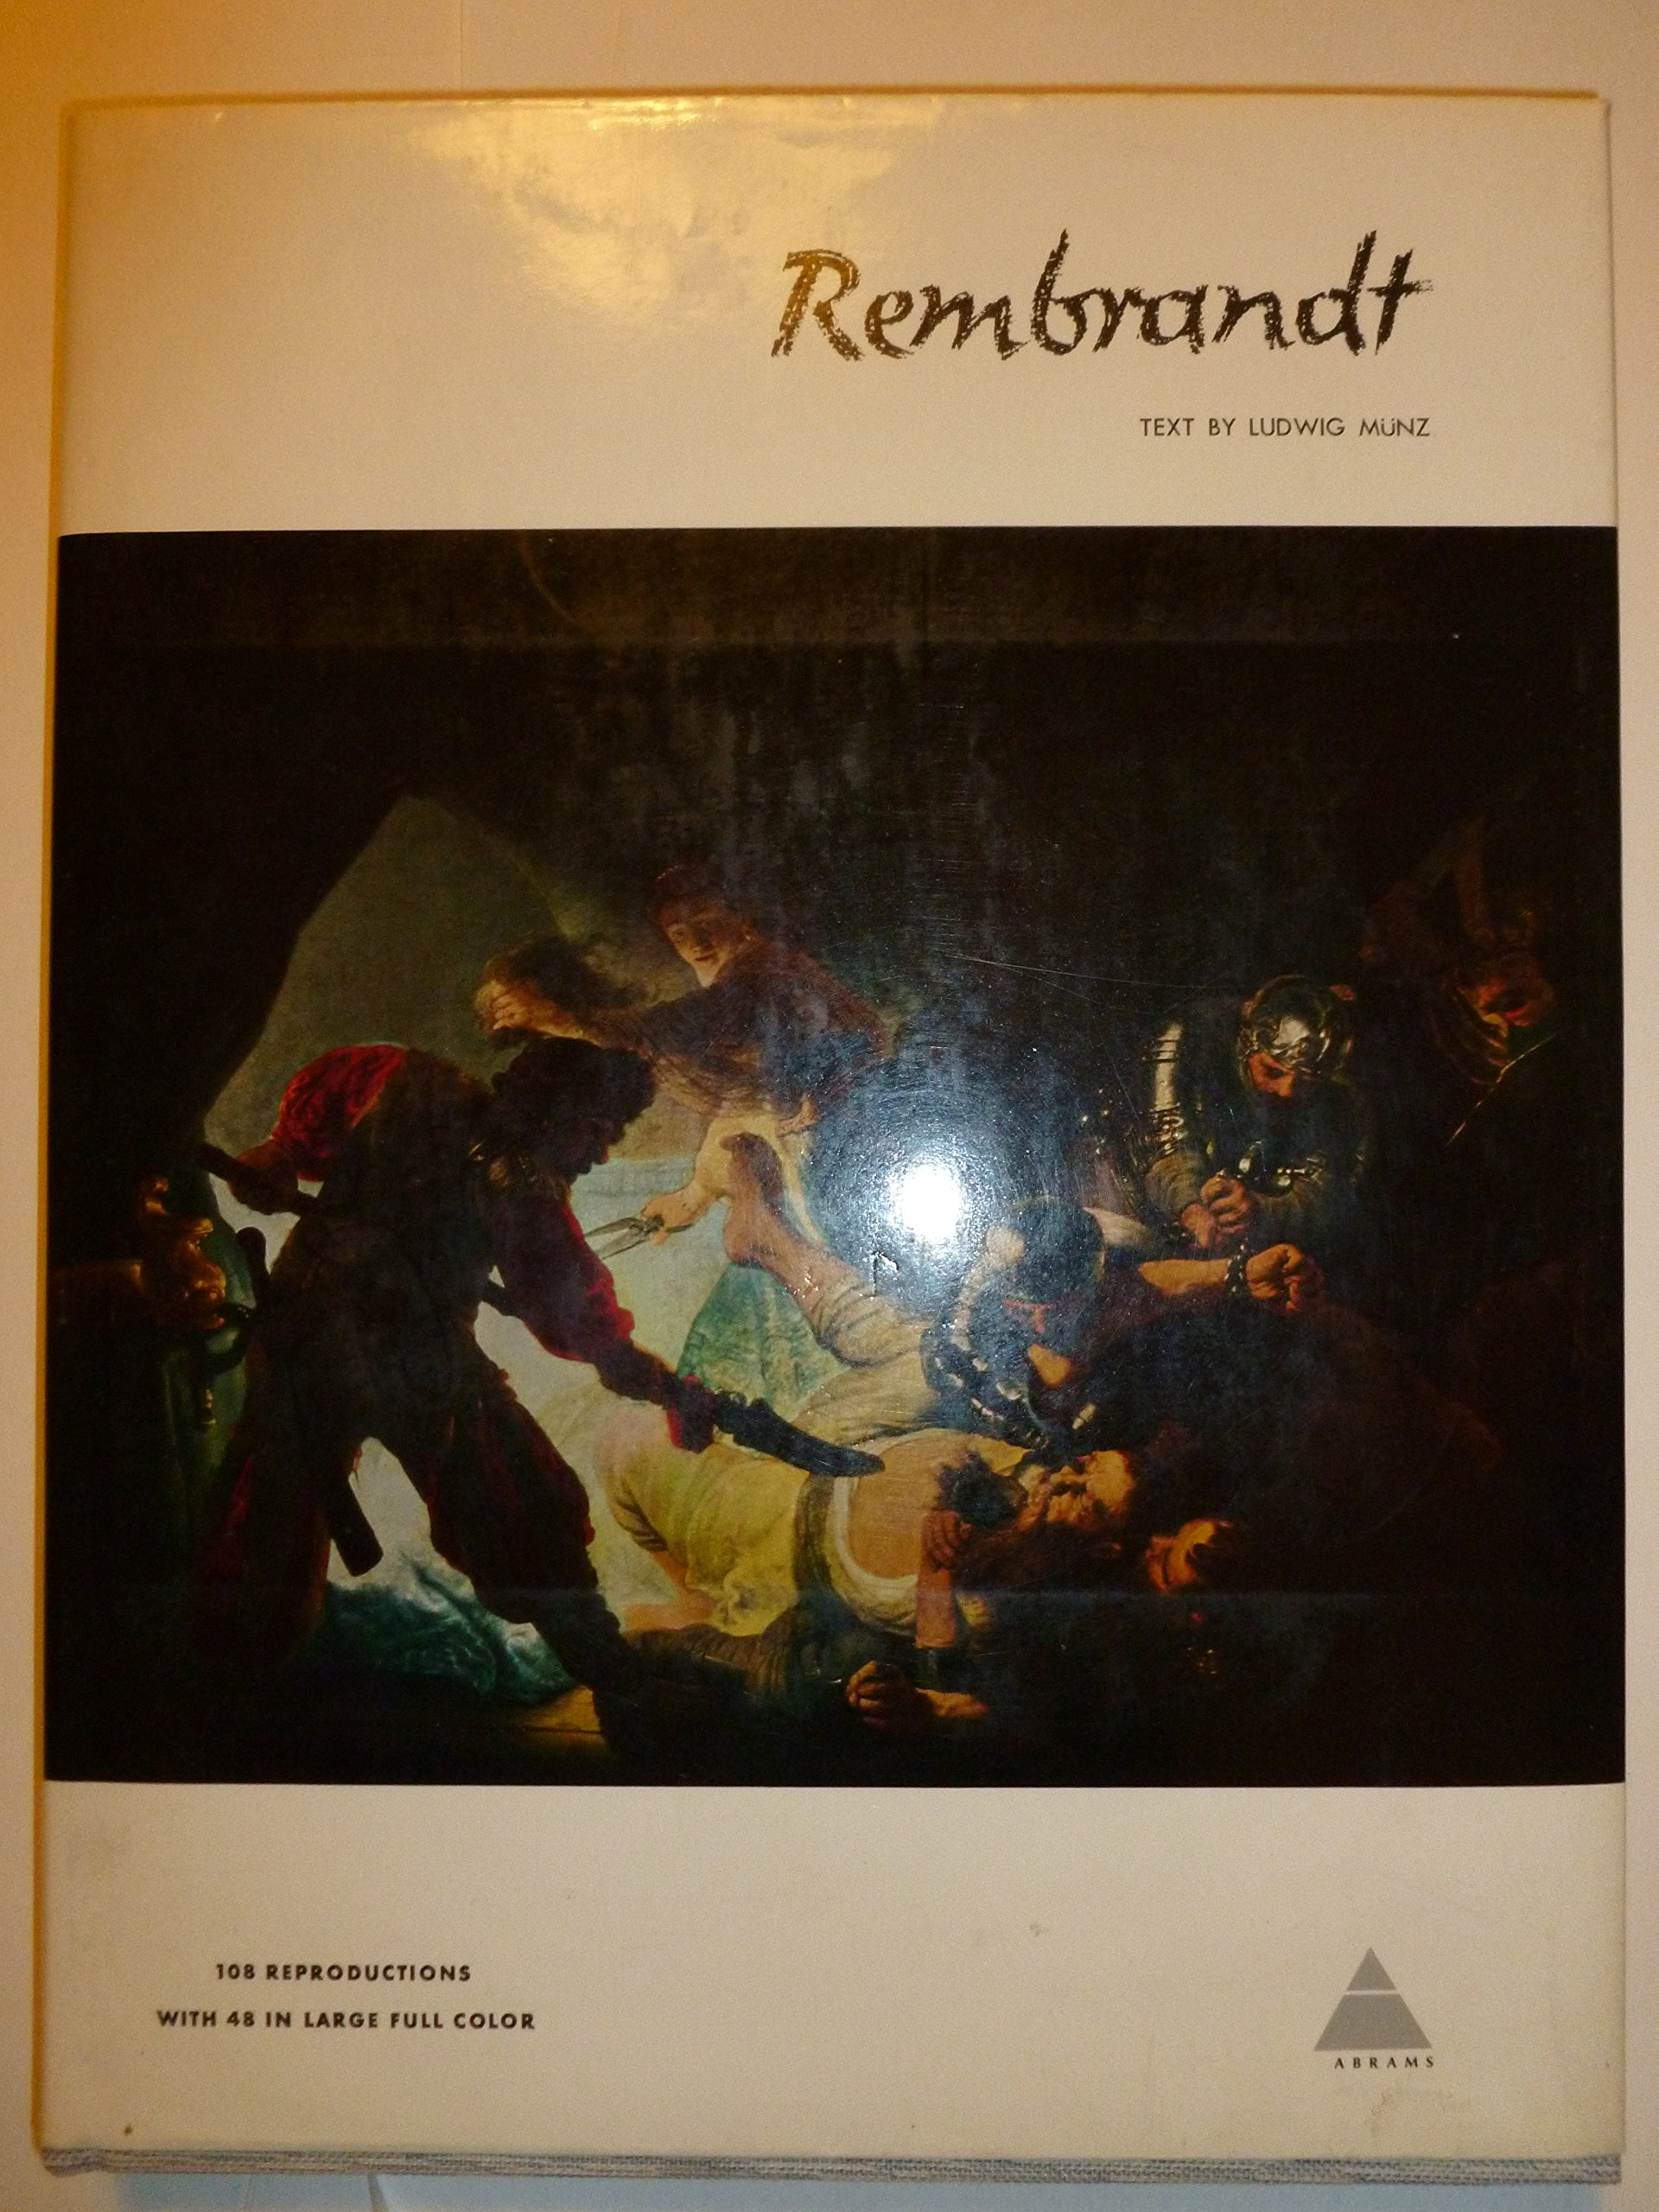 rembrandt text by ludwig munz with additional commentaries by bob haak the library of great painters revised edition 108 reproductions with 48 in large full color isbn 810904373